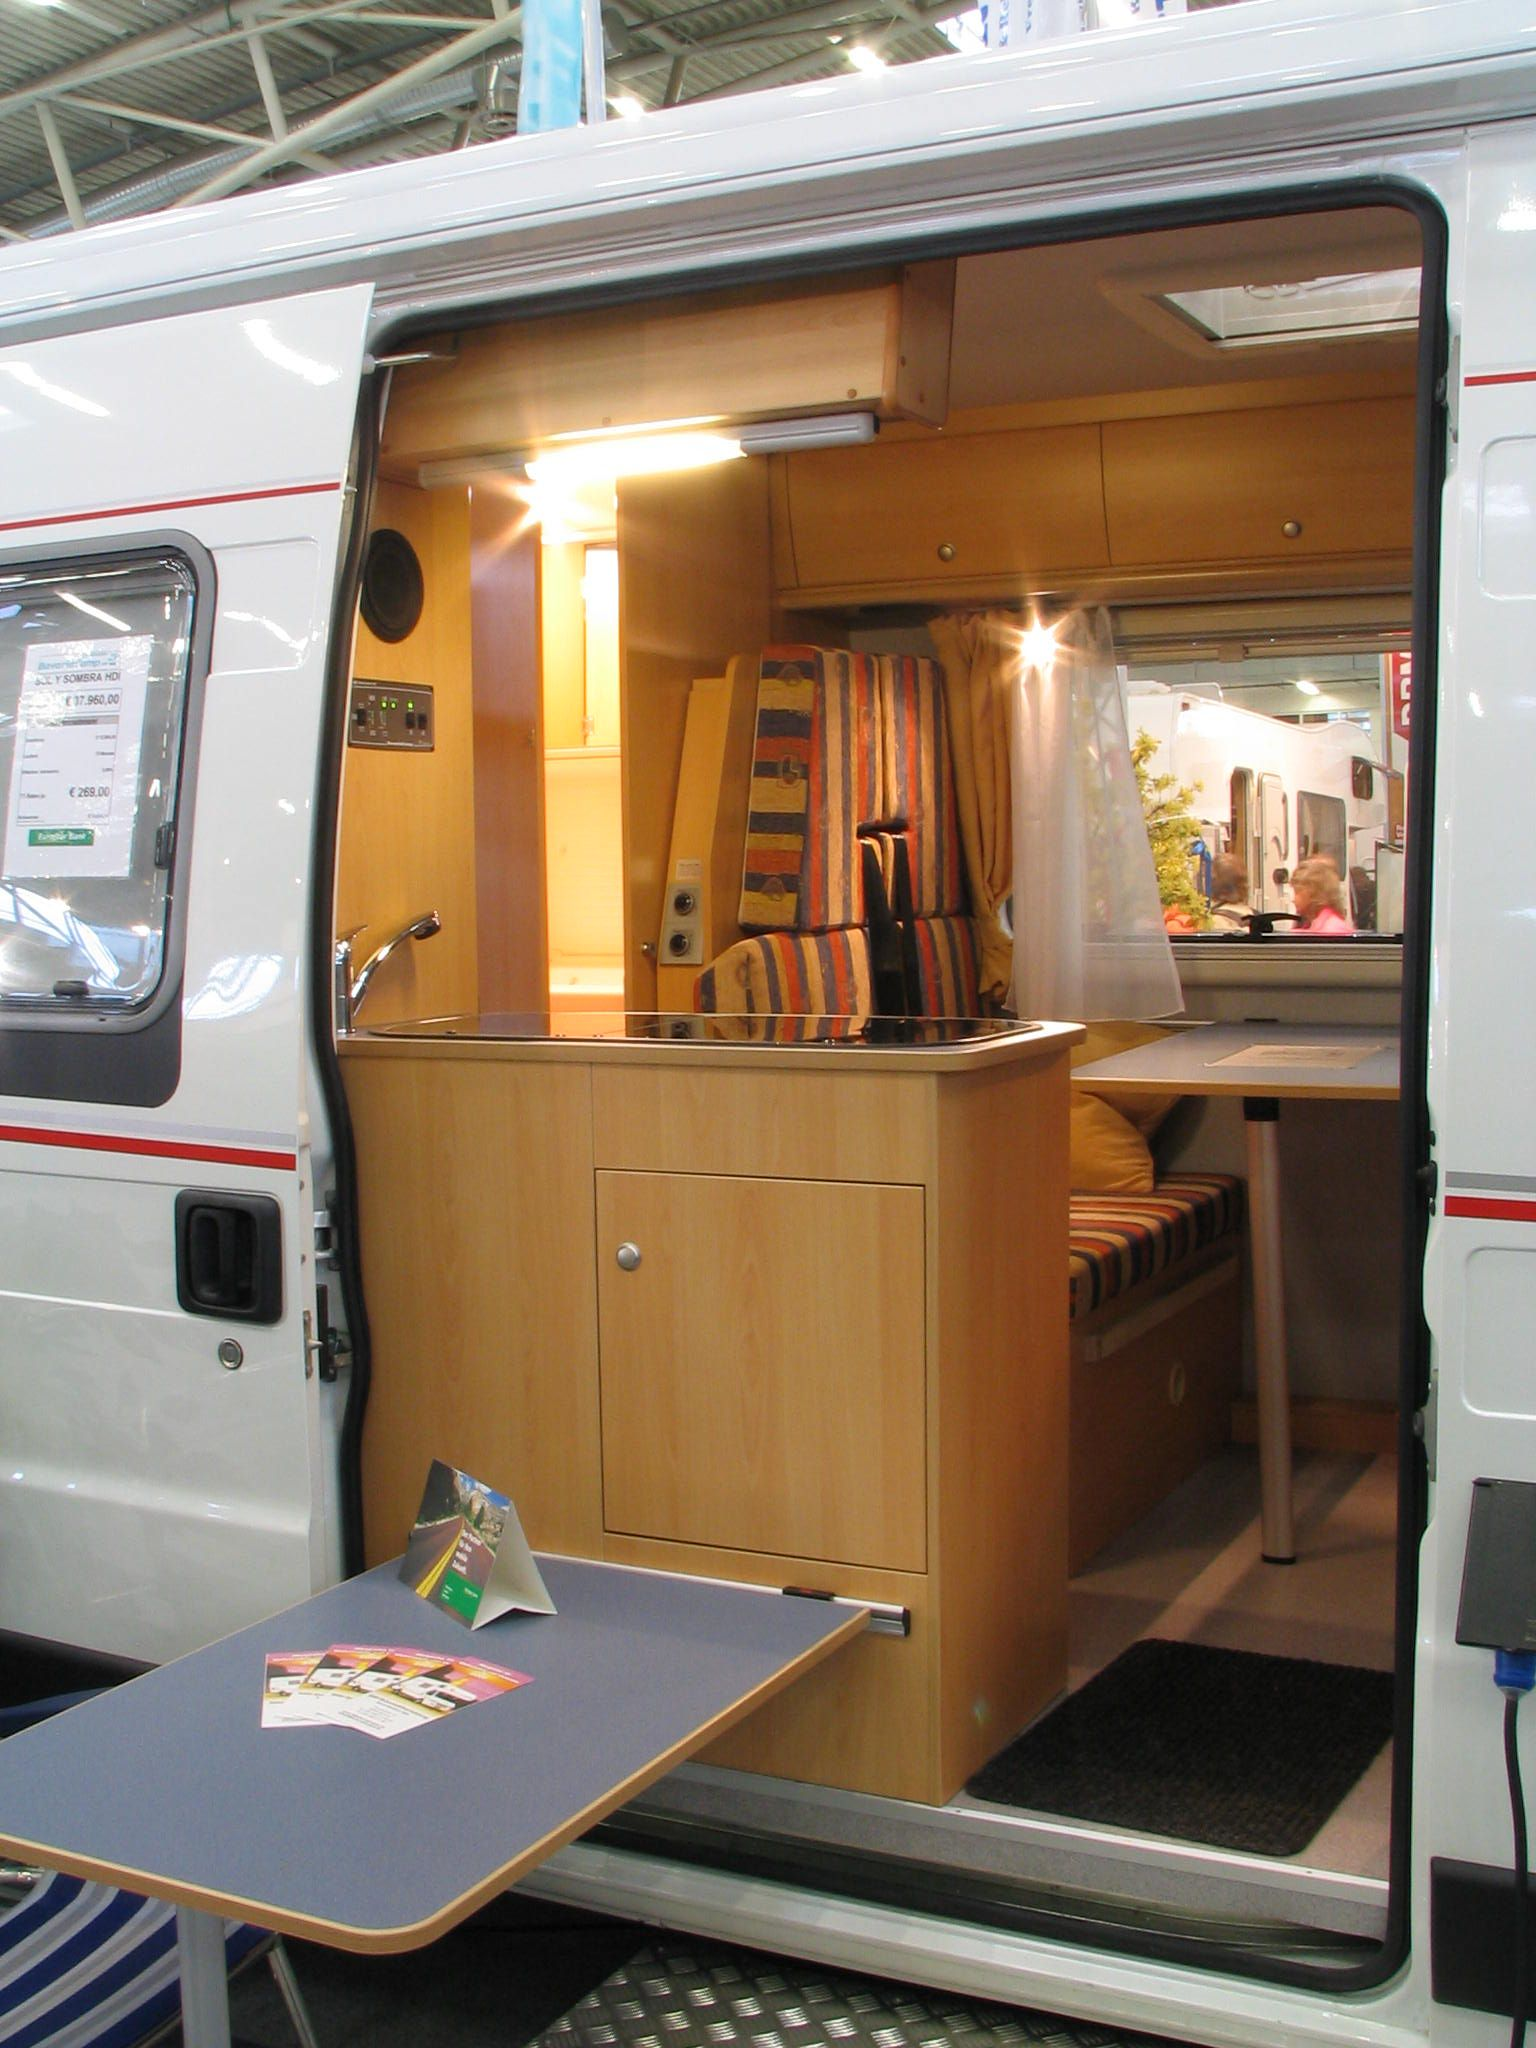 fiat ducato kastenwagenausbau f r familie bavaria camp denkt mit seinen sol y sombra auch an die. Black Bedroom Furniture Sets. Home Design Ideas